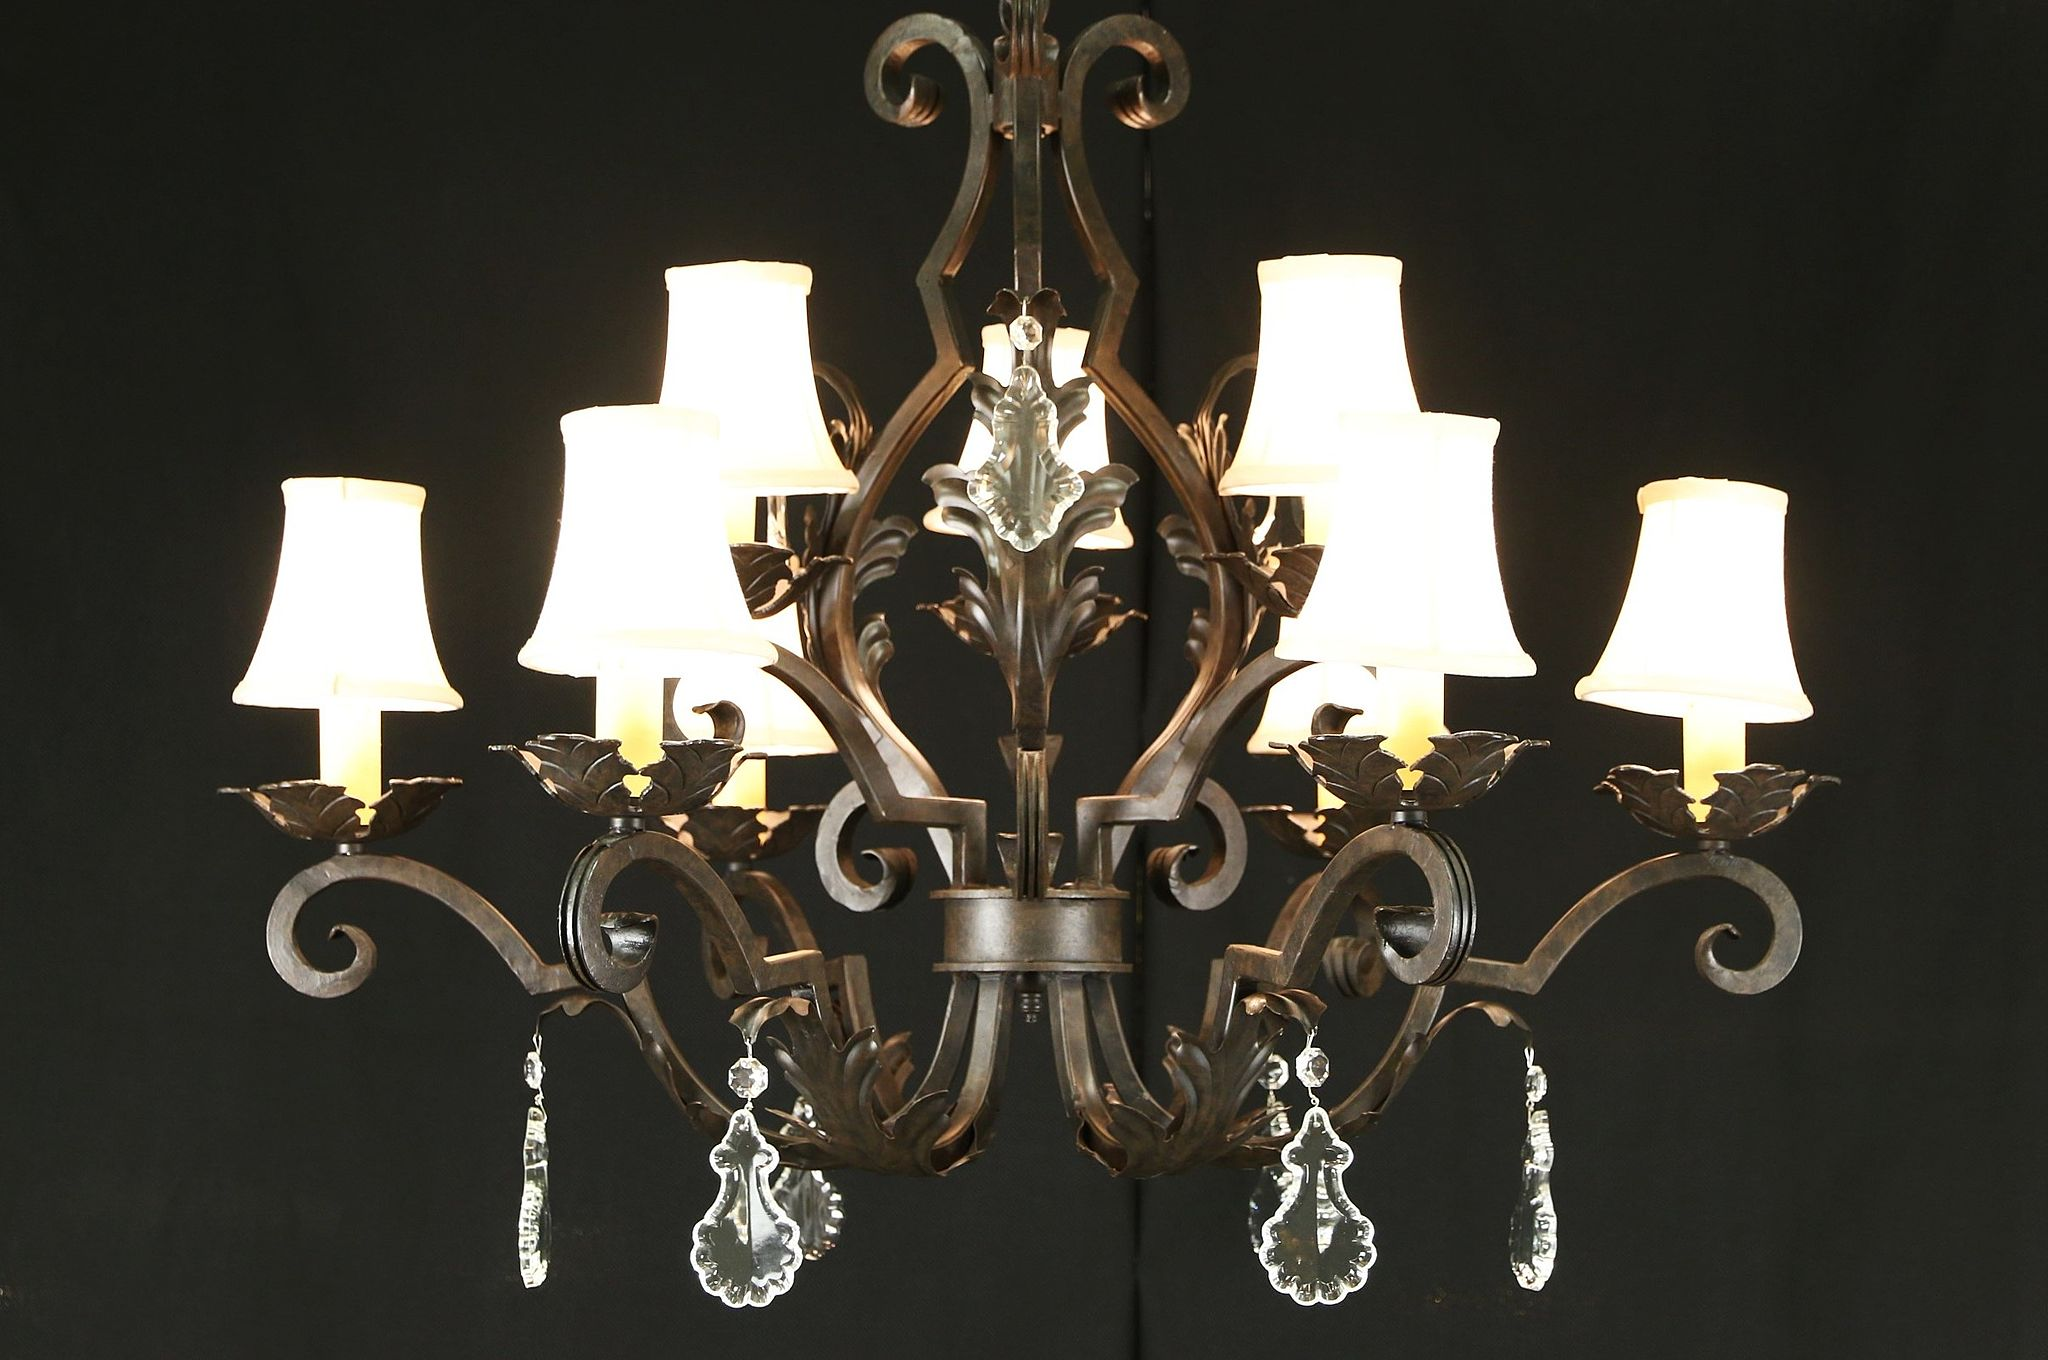 Sold wrought iron statuary bronze 9 candle 36 wide chandelier wrought iron statuary bronze 9 candle 36 wide chandelier crystal prisms aloadofball Choice Image